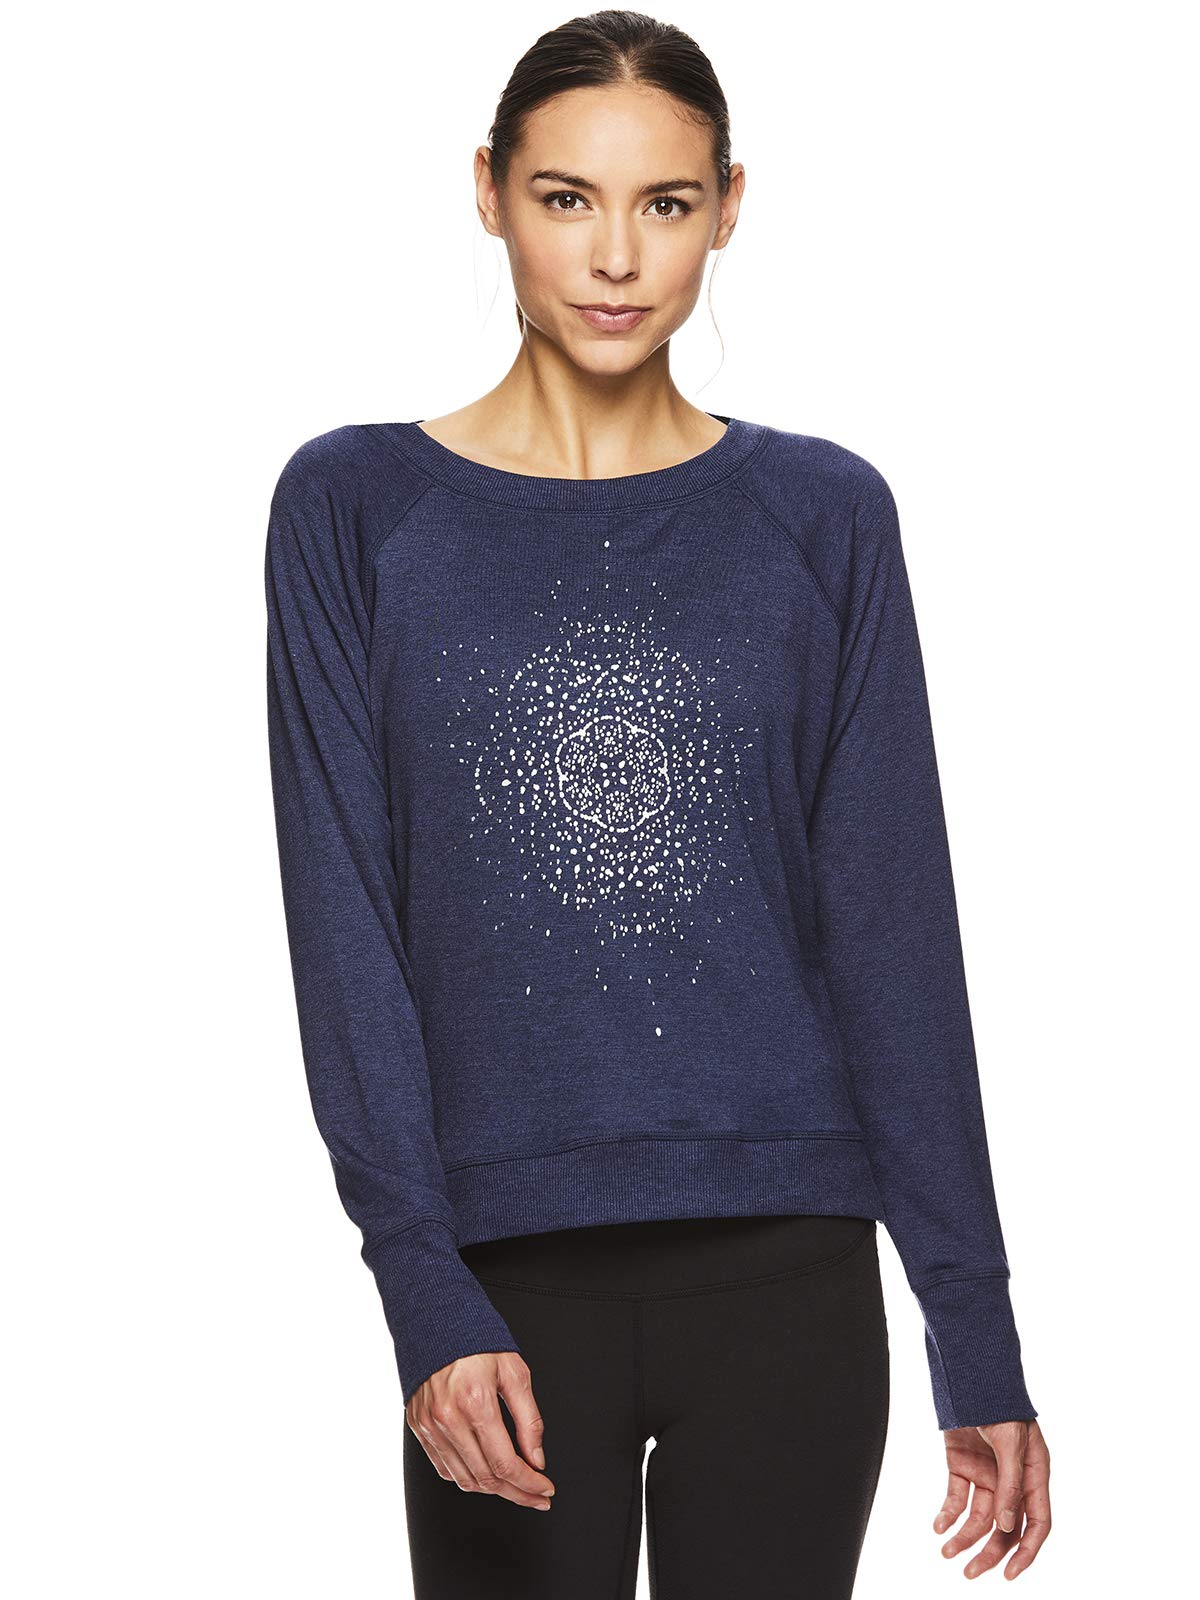 Gaiam Women's Pullover Yoga Sweater - Long Sleeve Graphic Activewear Shirt - Calla Medieval Blue Heather, X-Large by Gaiam